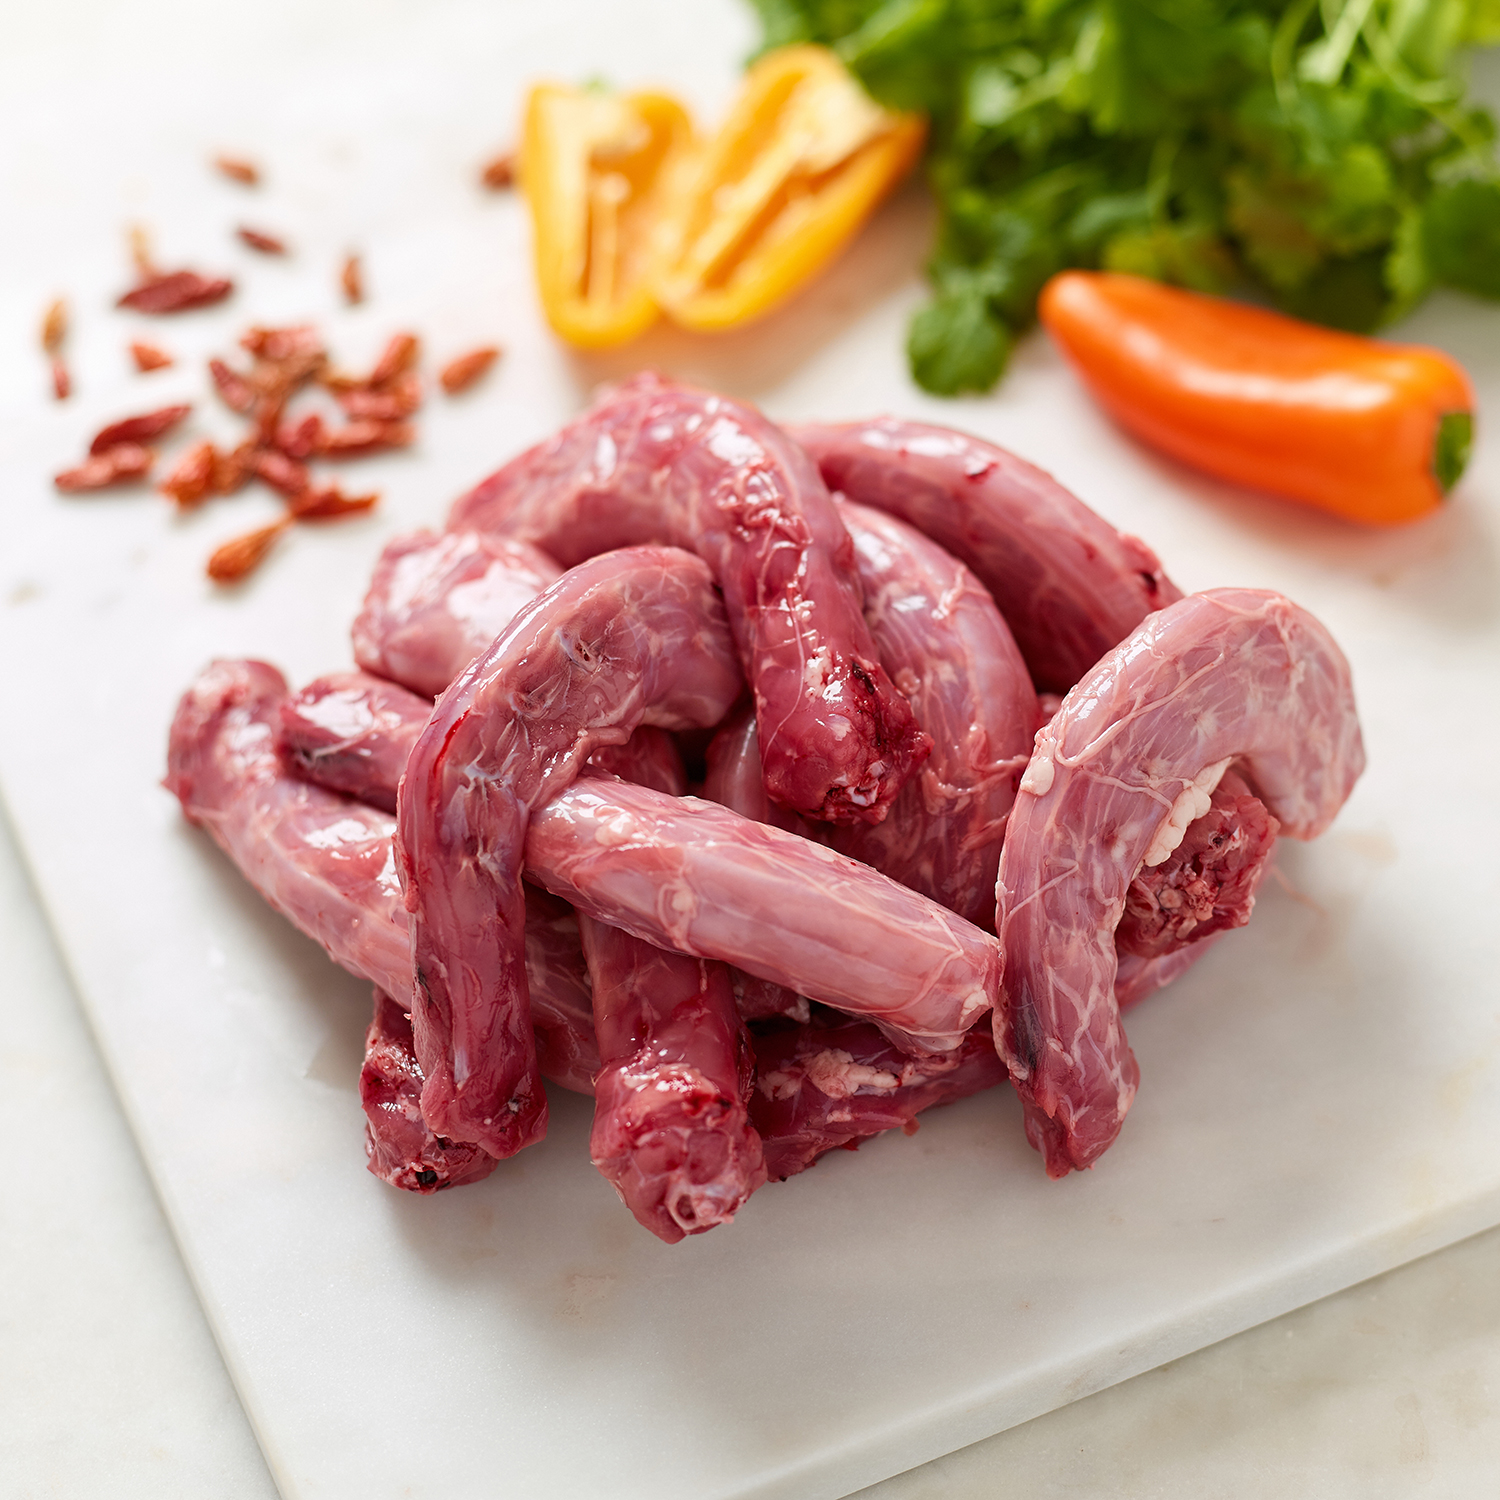 Organic Chicken Necks with birds eye chillies, whole and sliced peppers and coriander